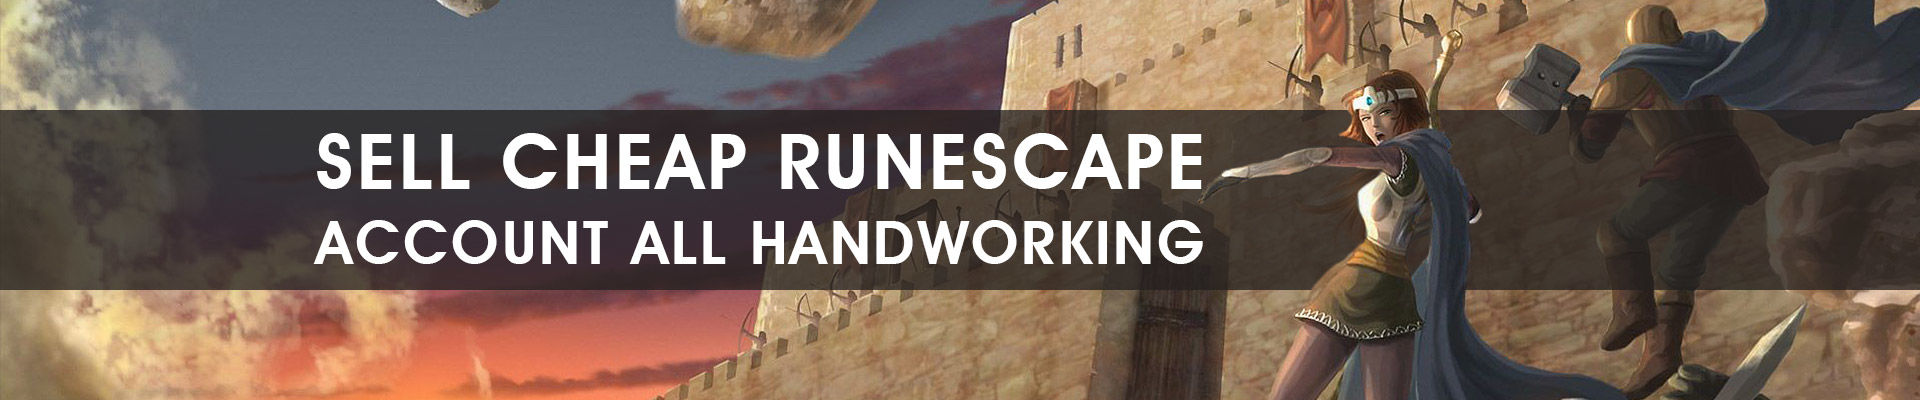 Sell Cheap Runescape Account All Handworking